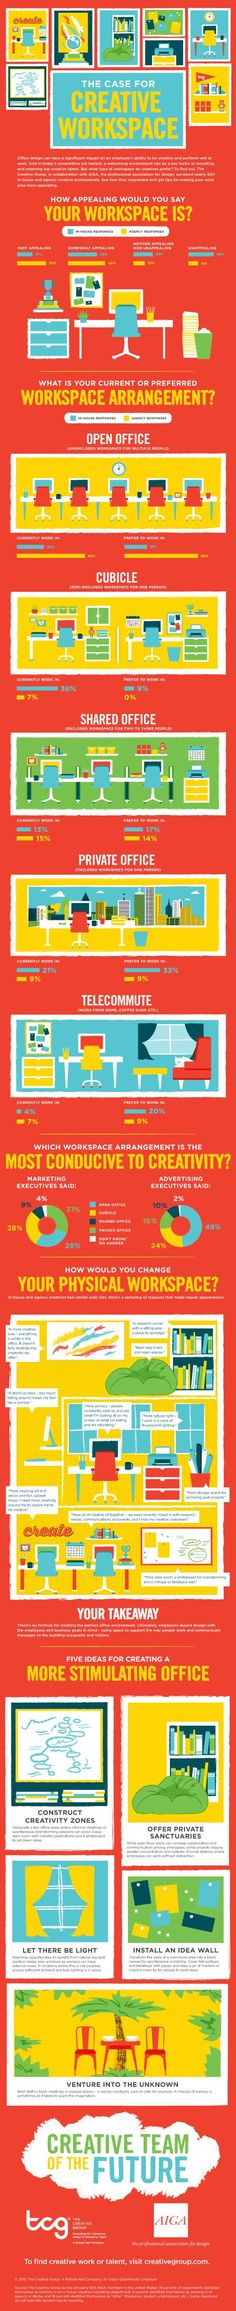 Infographic: Creative Workspaces | Robert Half